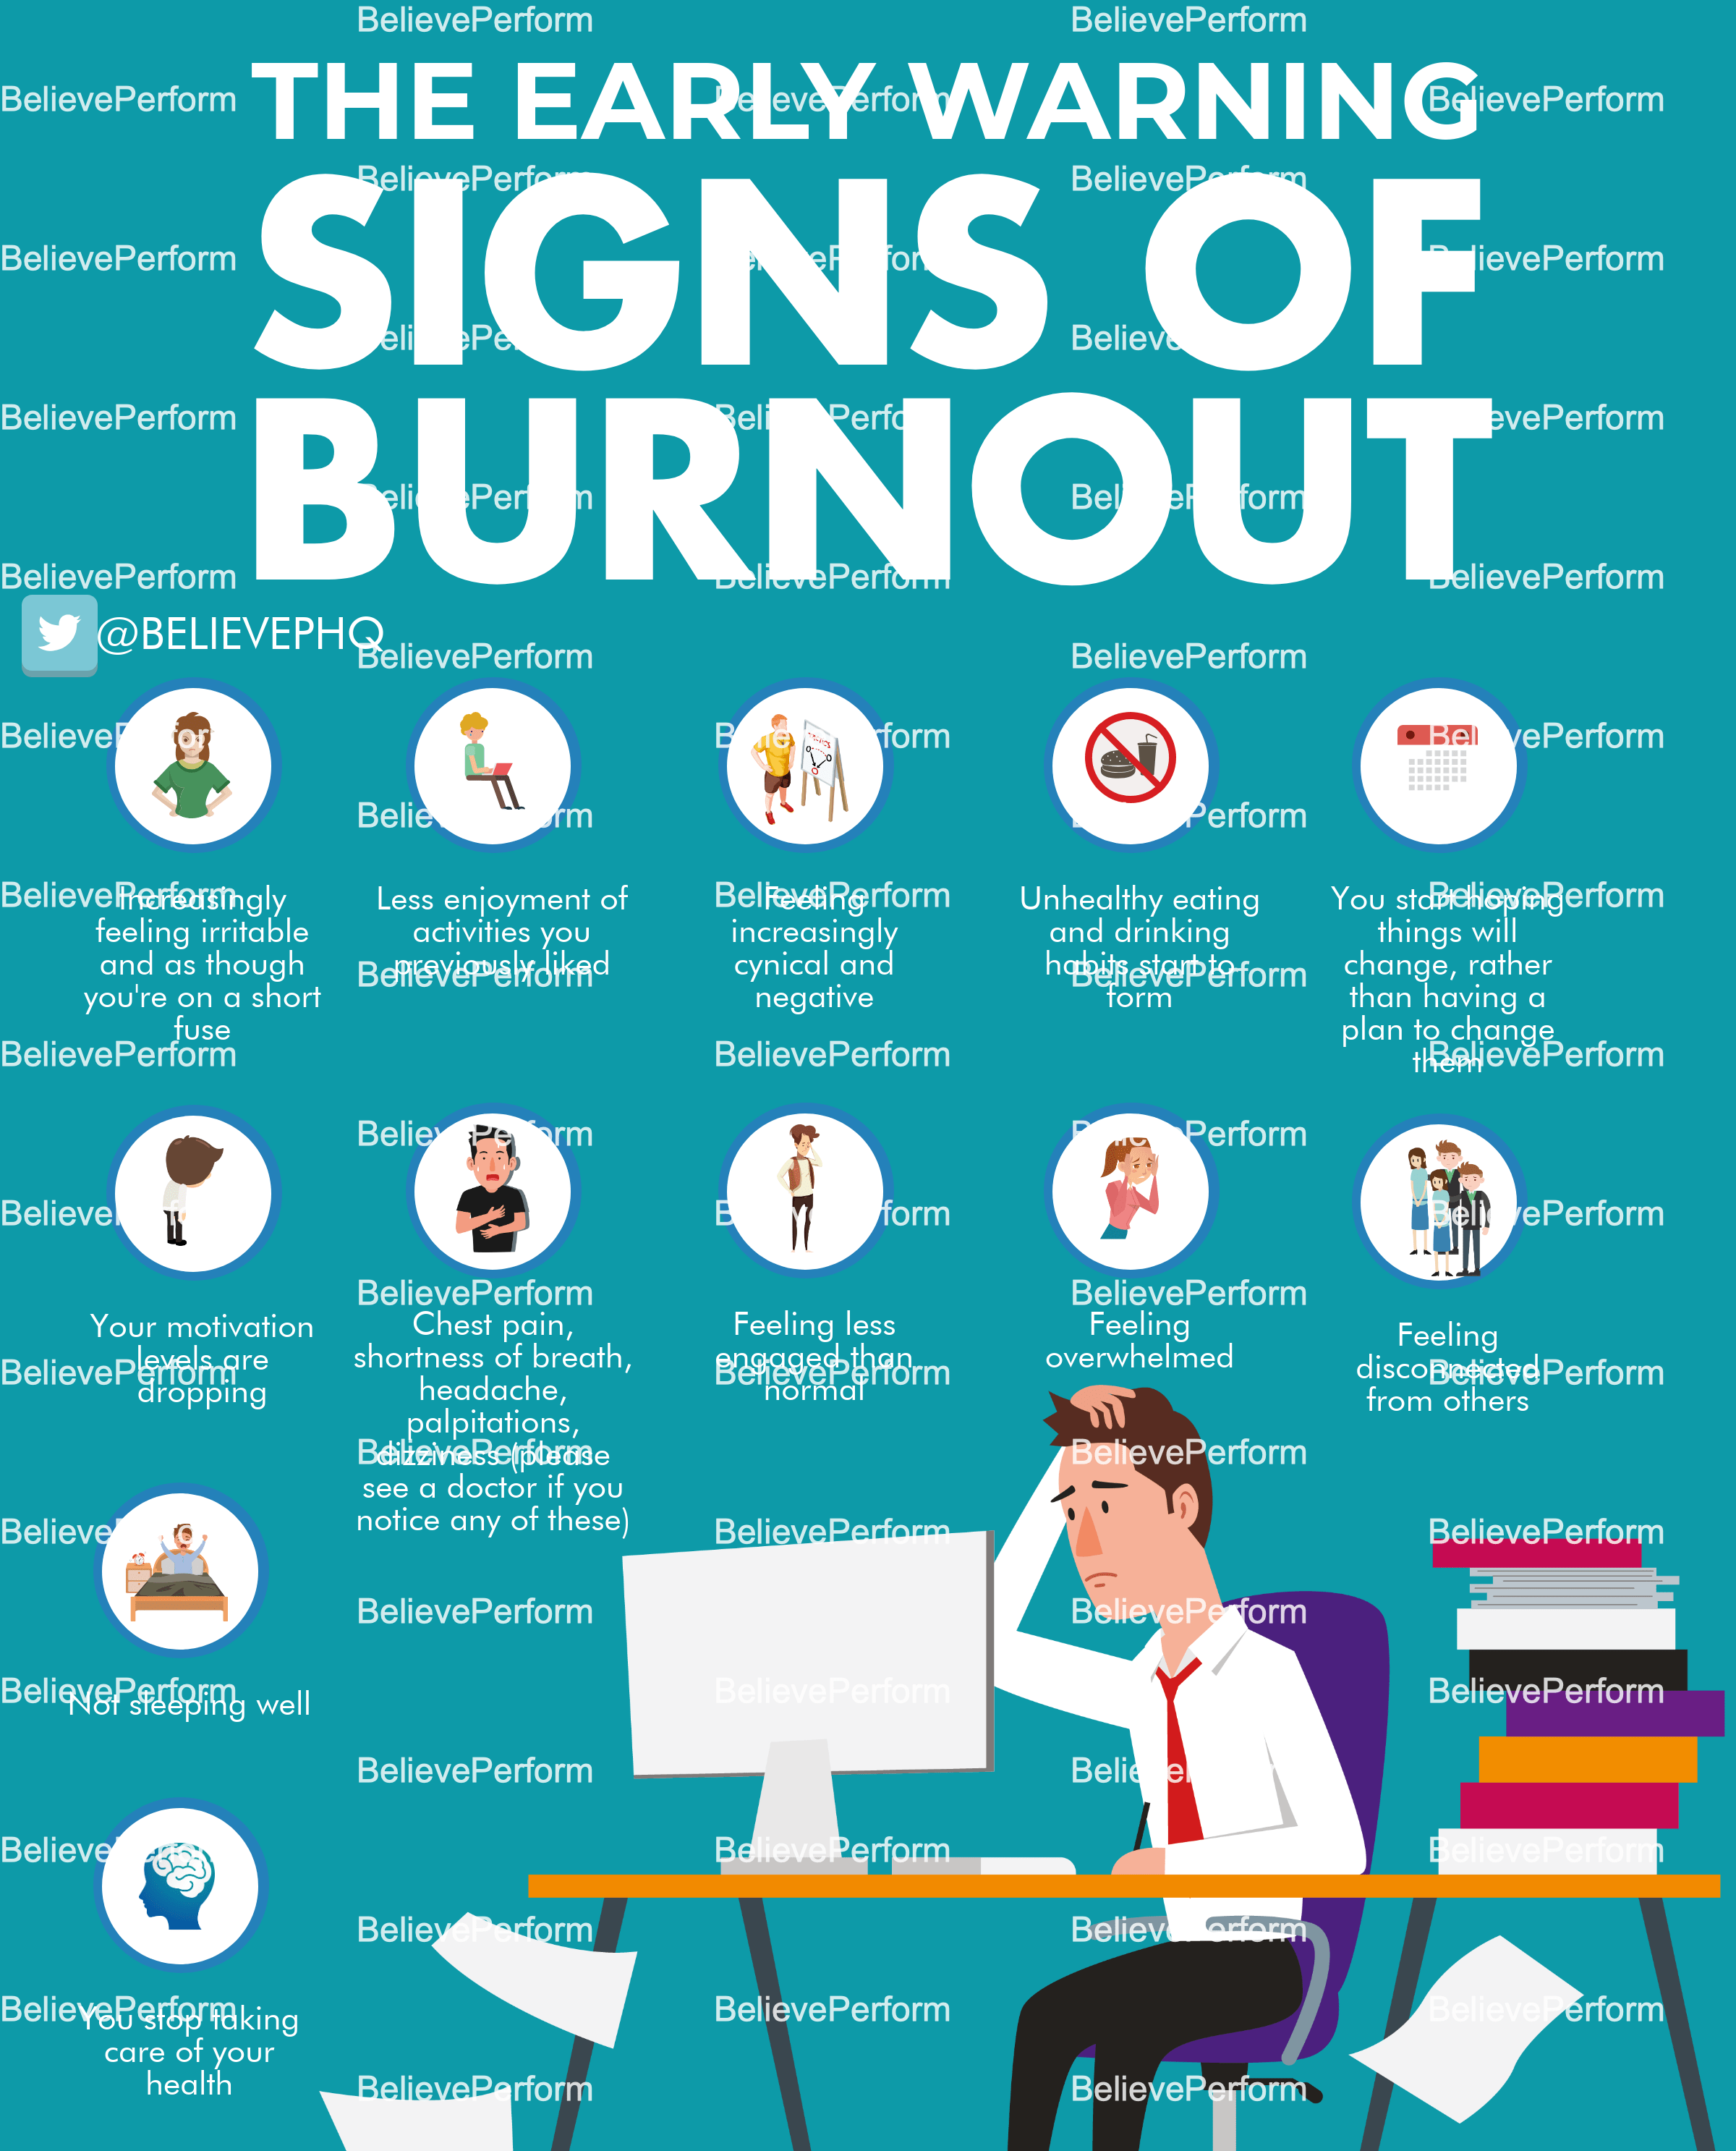 The Early Warning Signs Of Burnout